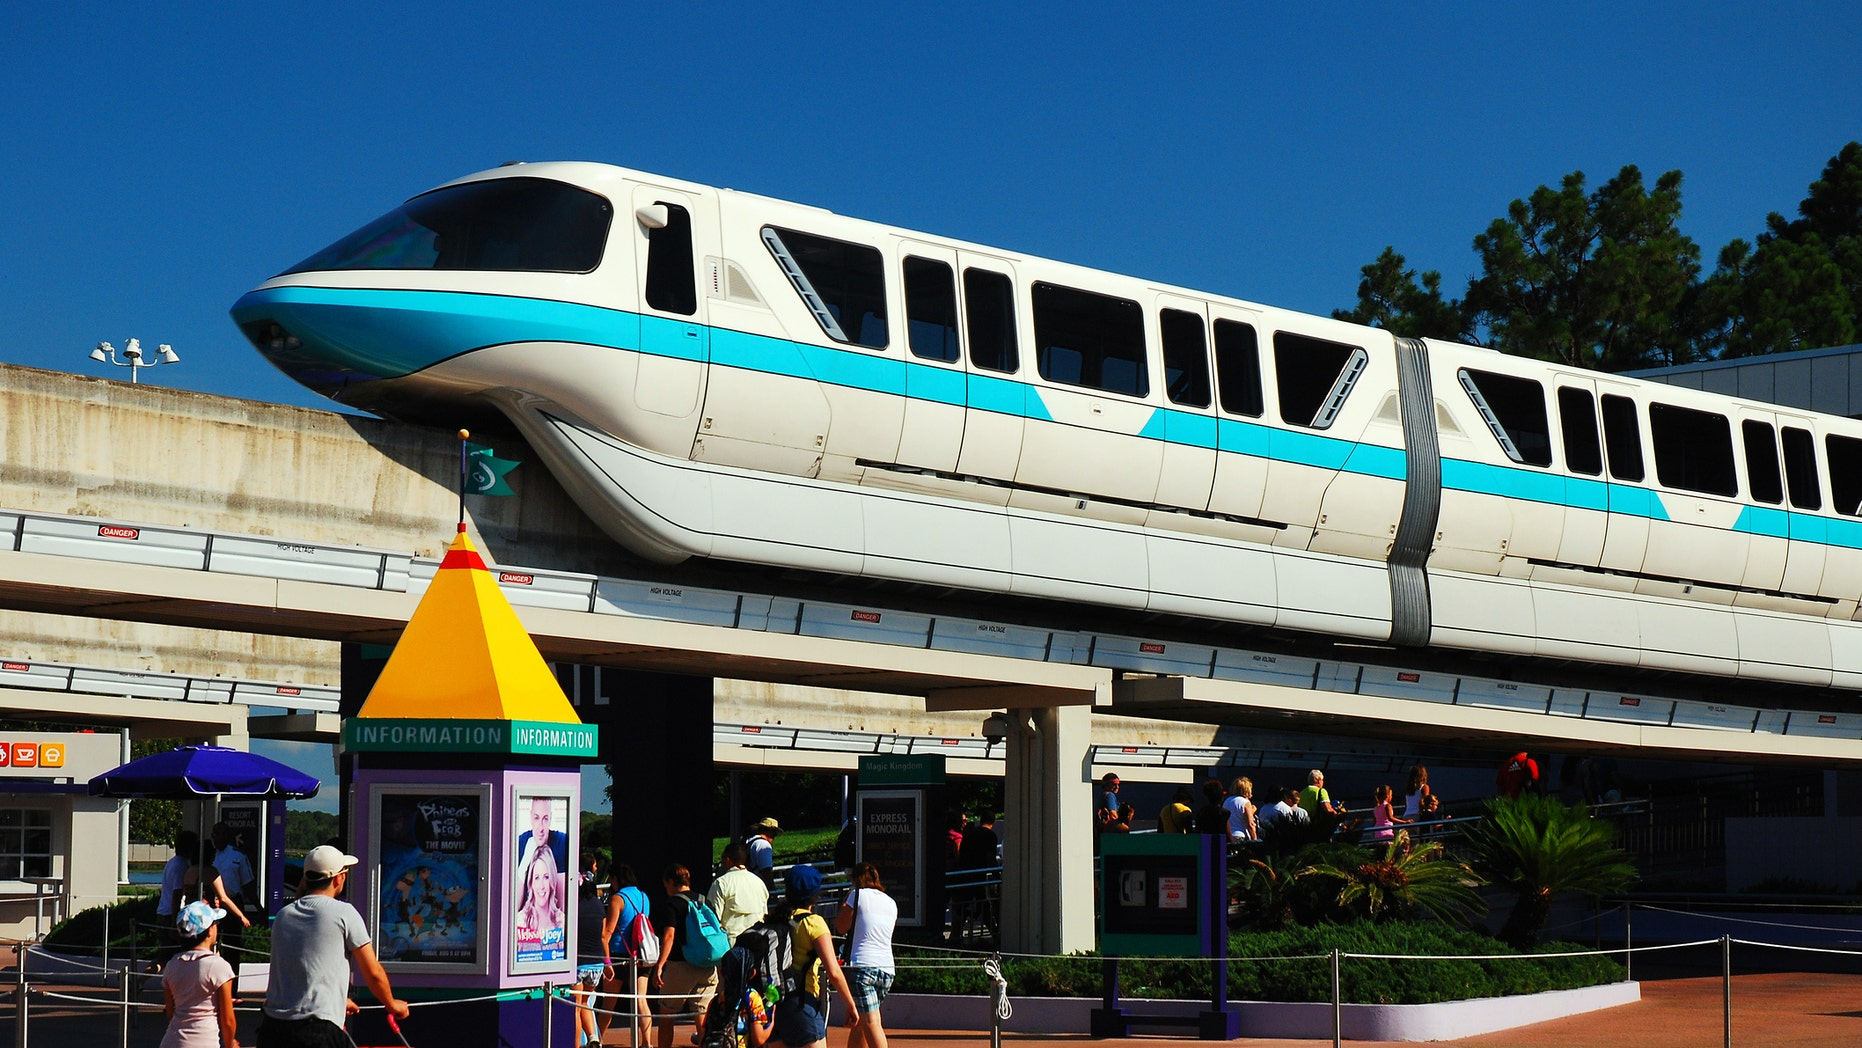 No one was injured, but guests reported hourslong waits while it was being fixed.